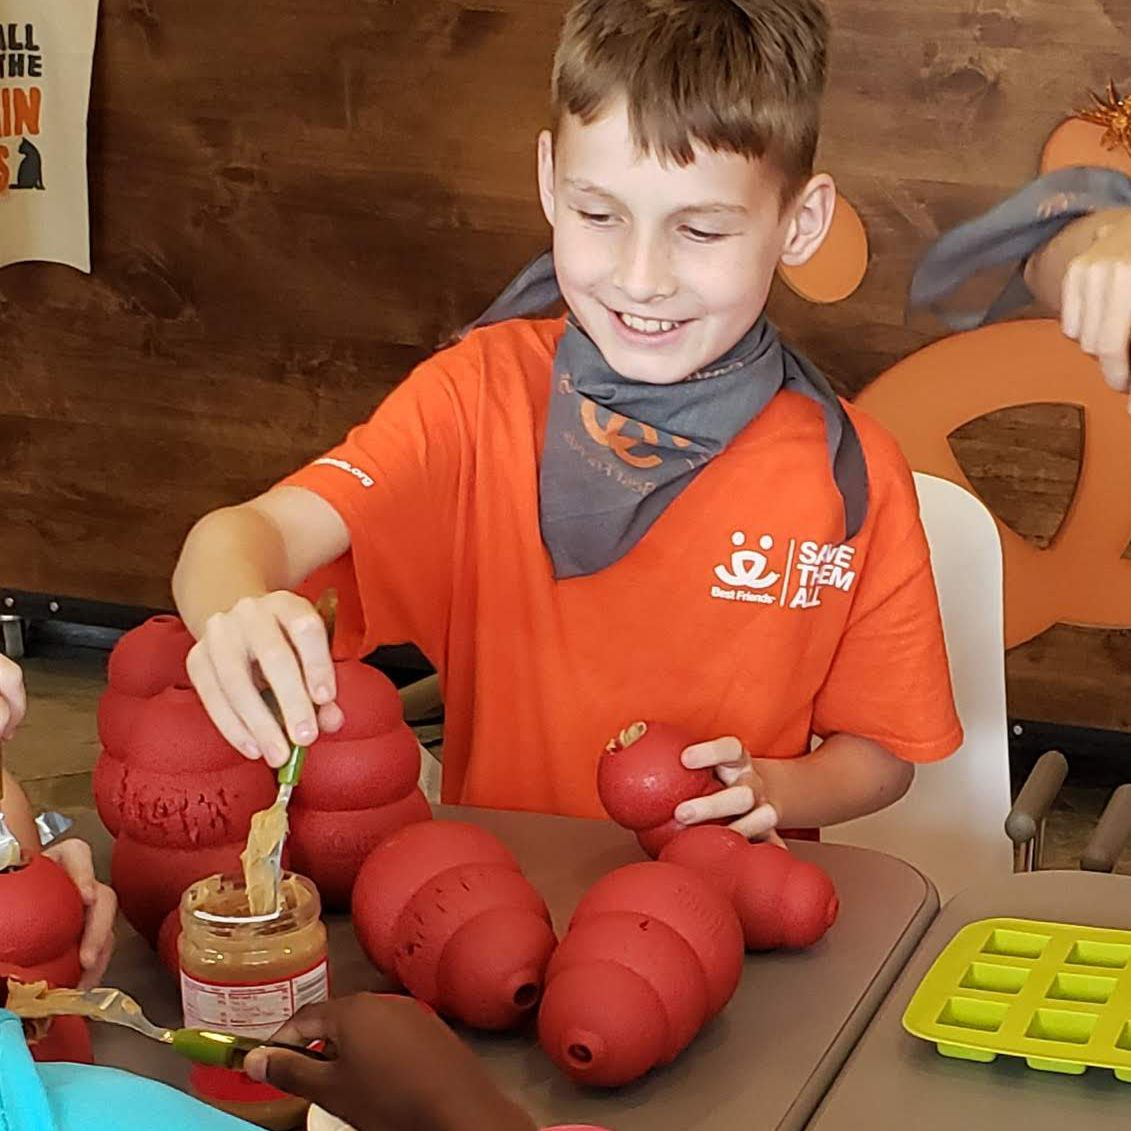 Jack fills up Kongs with peanut butter on his birthday.